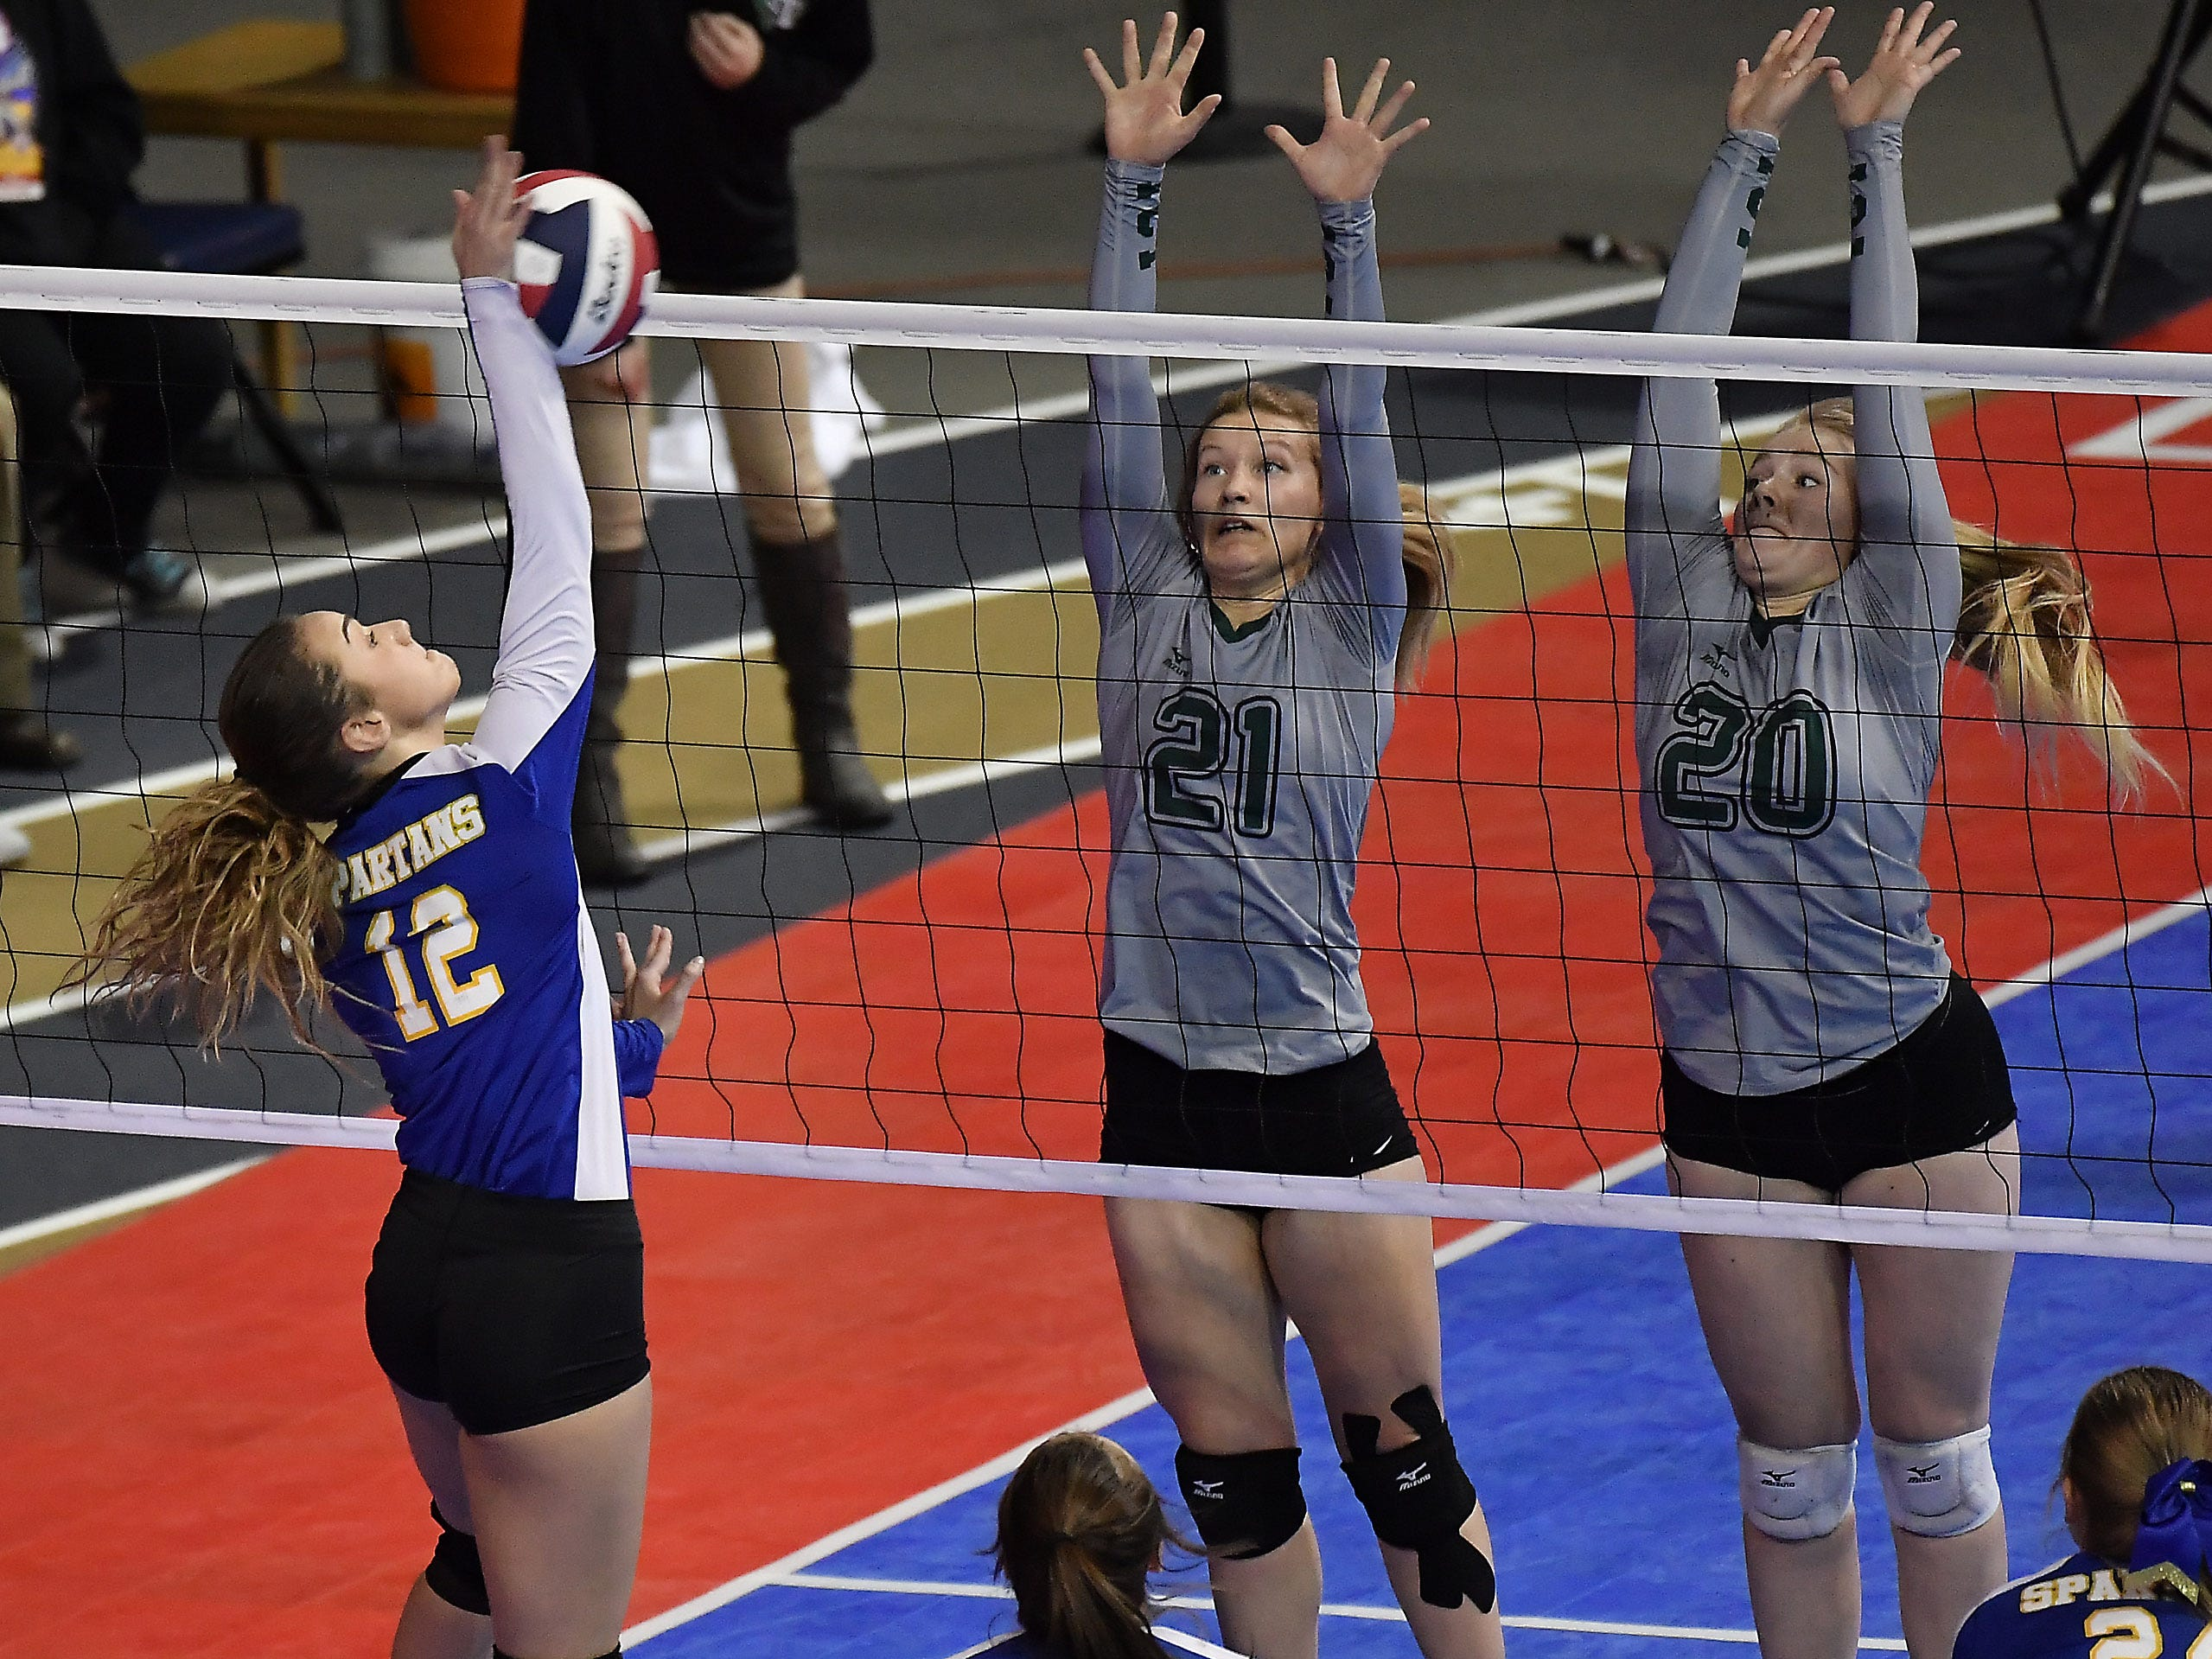 Kylee Cook of Scobey attacks as Tri-Cities' Sami Connerton (21) and Sierra Stahl (20) defend during a Class C match at the All-Class State Volleyball Tournament at the Brick Breeden Fieldhouse in Bozeman Friday.